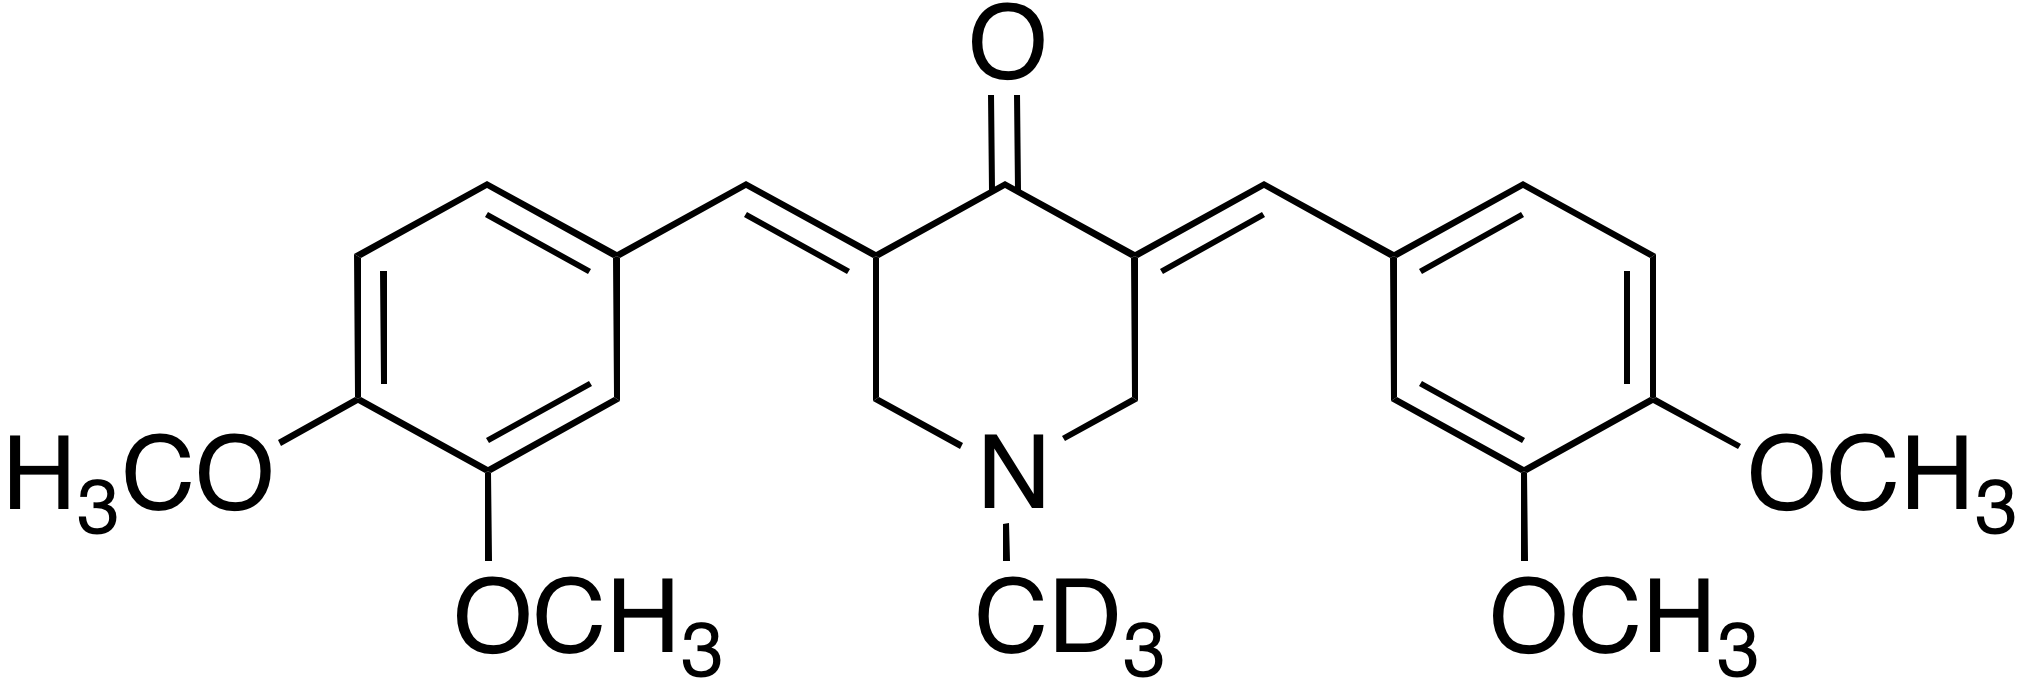 (3E,5E)-3,5-Bis(3,4-dimethoxybenzylidene)-1-methyl-d<sub>3</sub>-piperidin-4-one